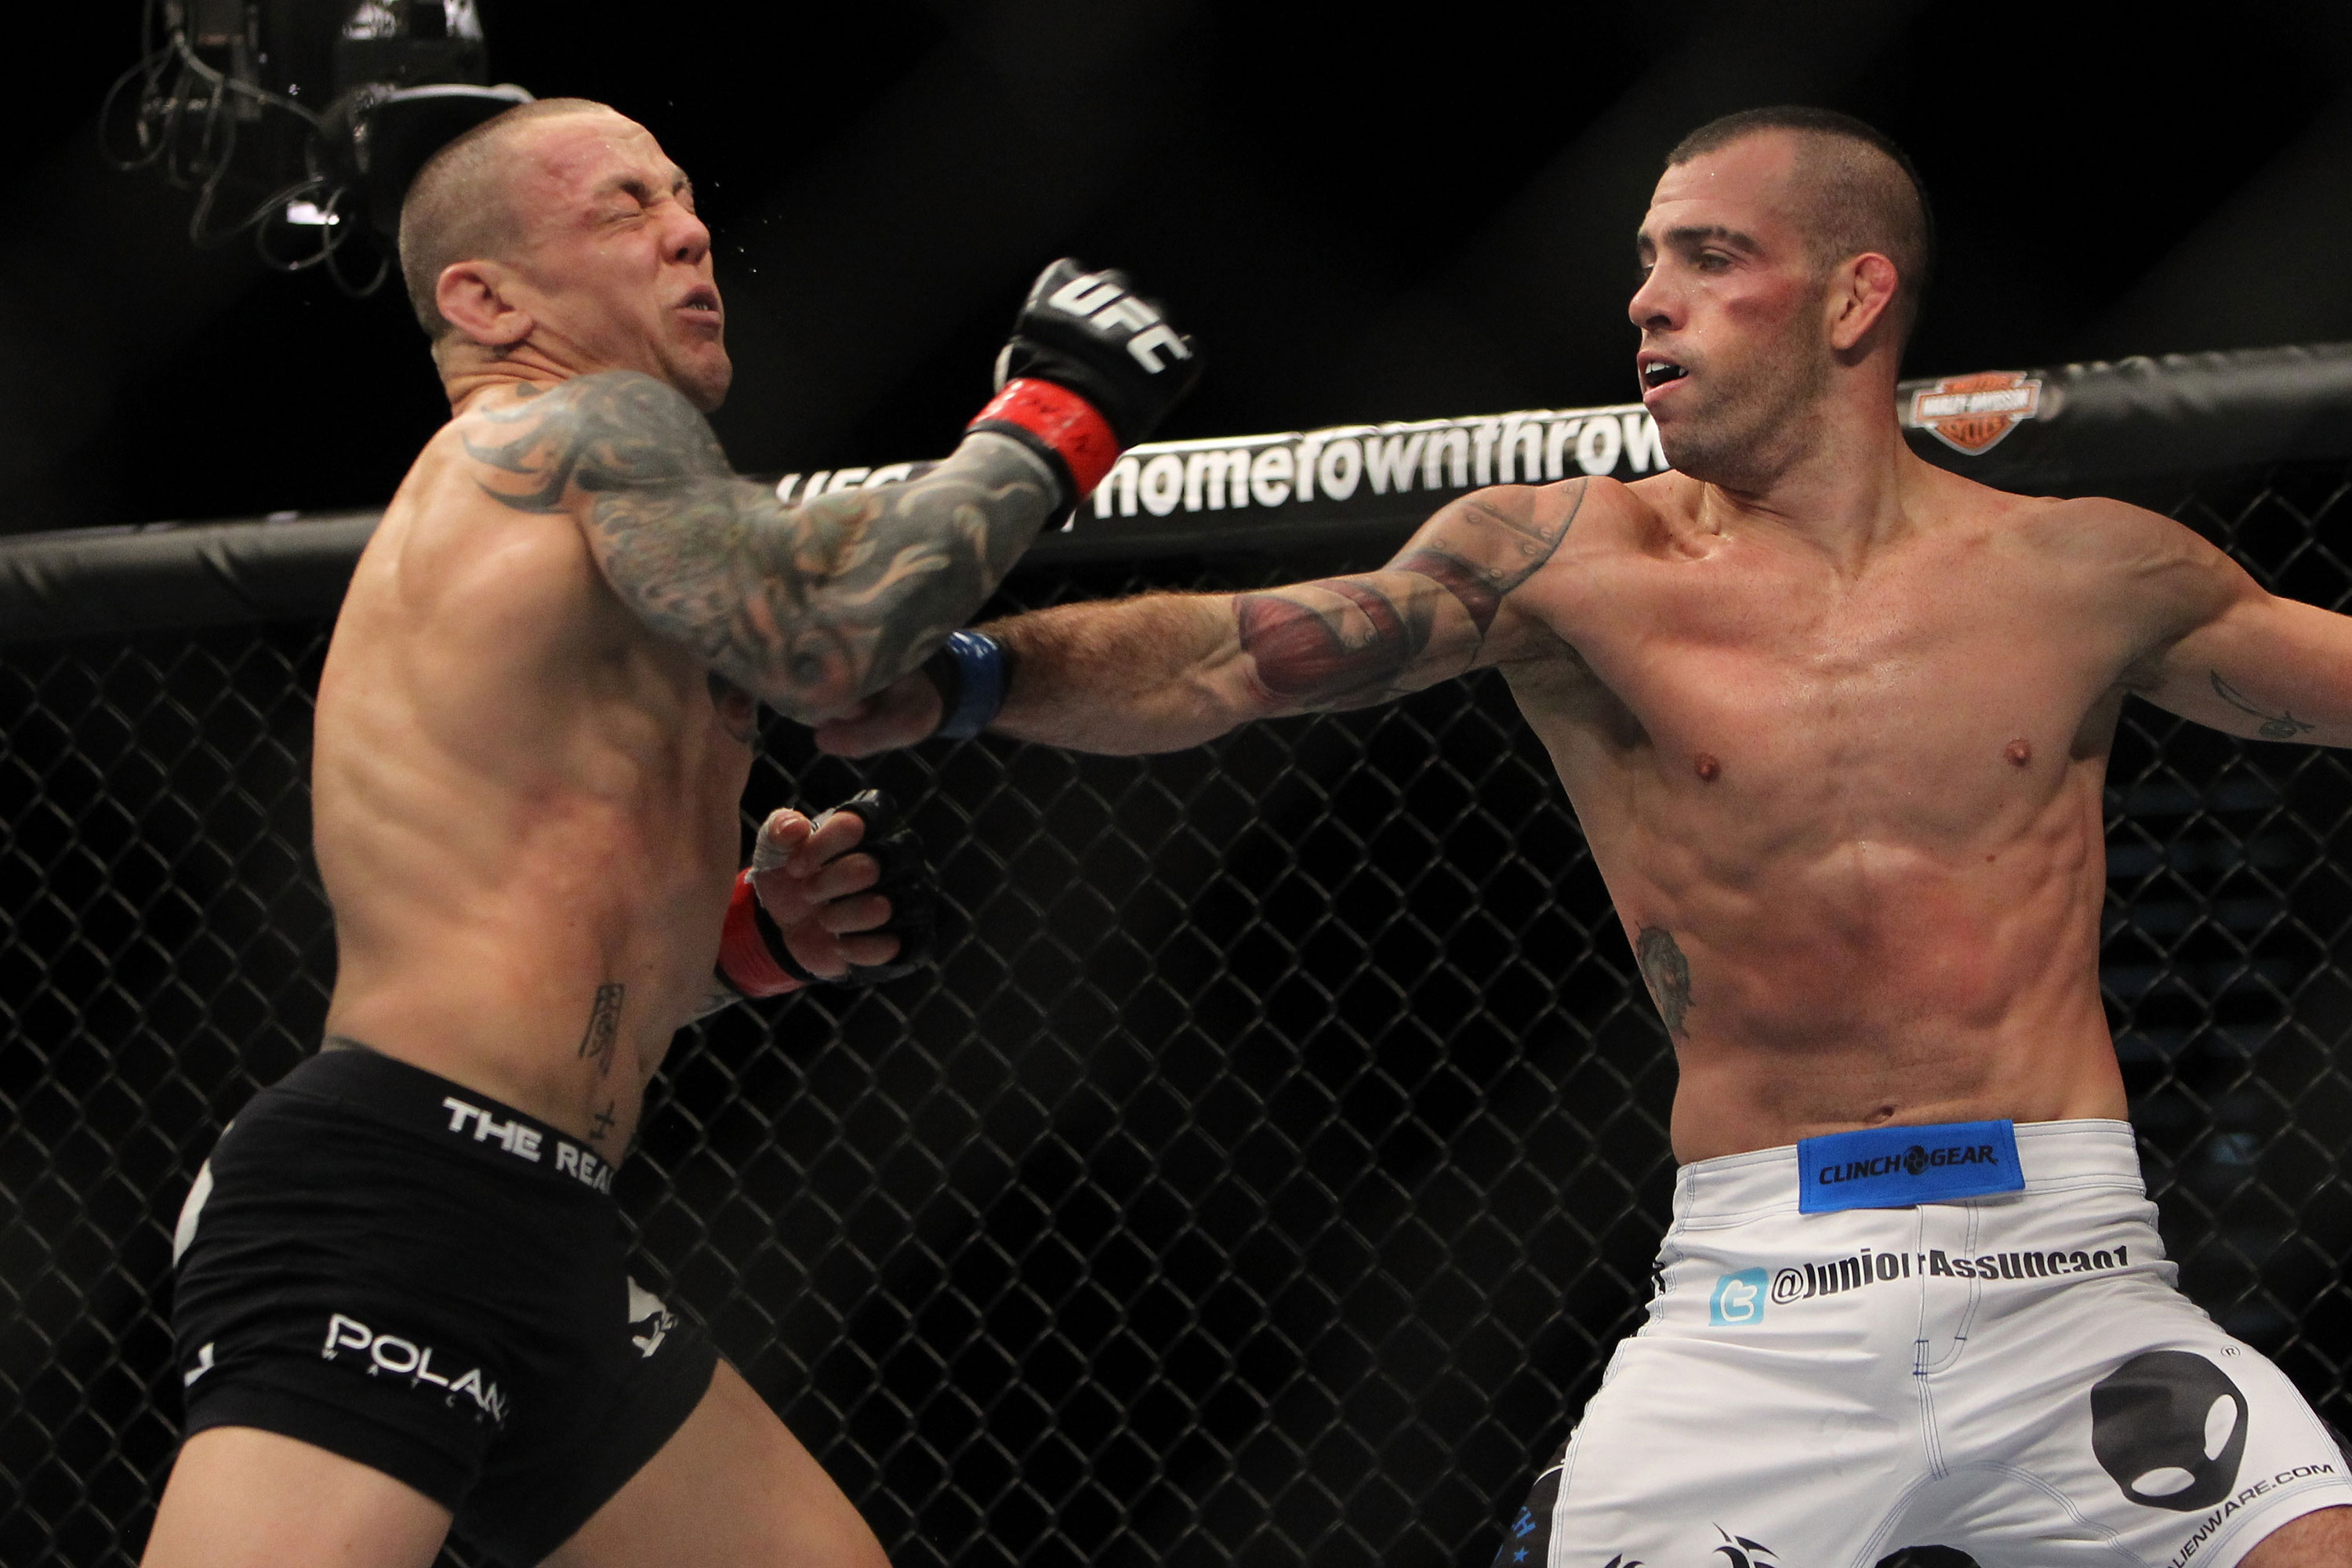 LAS VEGAS, NV - DECEMBER 30:  Junior Assuncao (white shorts) punches Ross Pearson (black shorts) during the UFC 141 event at the MGM Grand Garden Arena on December 30, 2011 in Las Vegas, Nevada.  (Photo by Josh Hedges/Zuffa LLC/Zuffa LLC via Getty Images) *** Local Caption *** Junior Assuncao; Ross Pearson